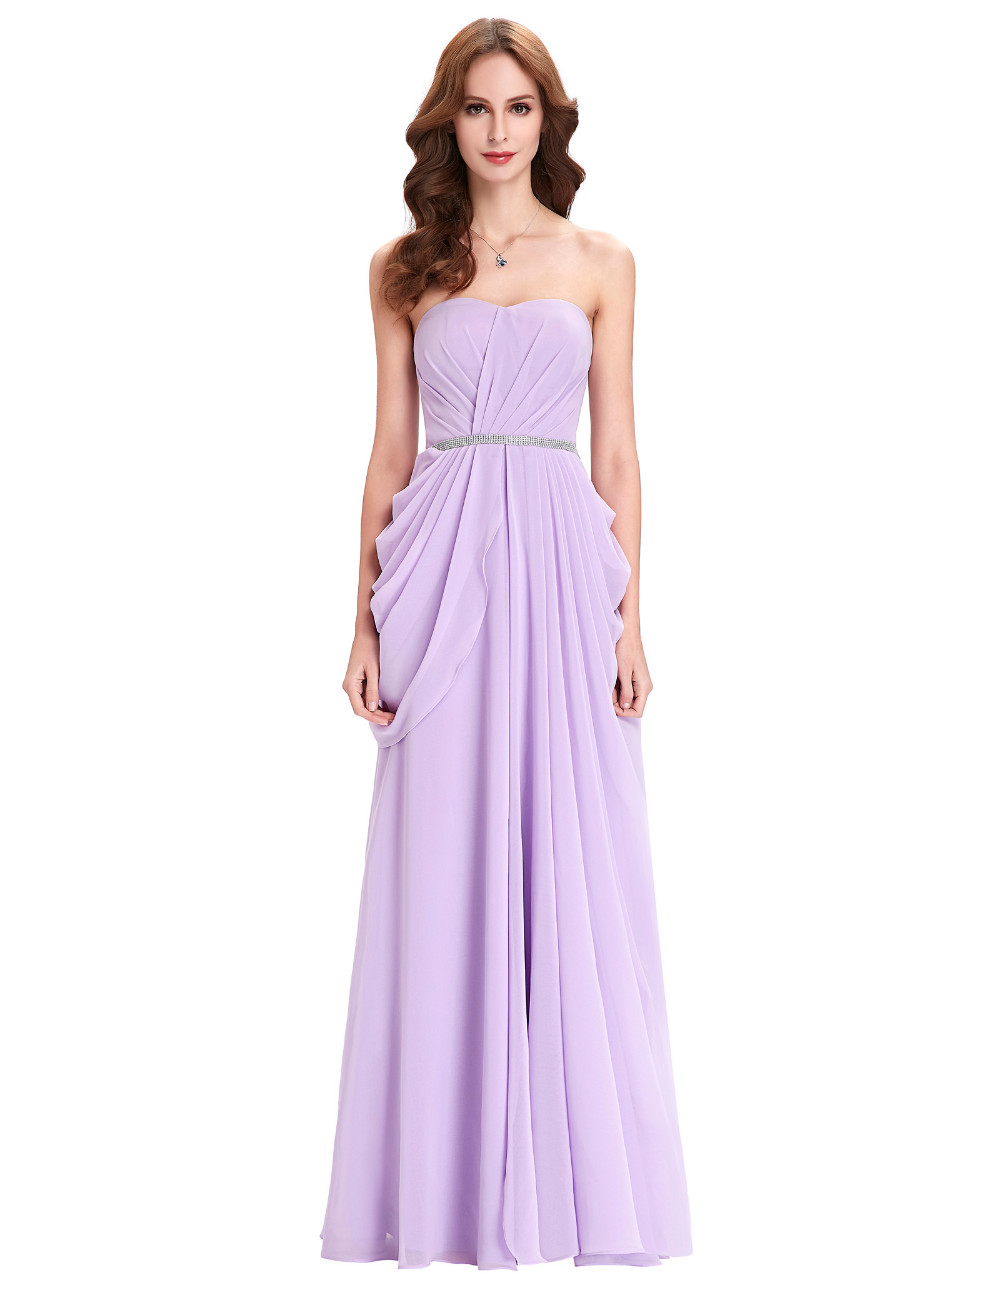 Purple Lavender Long Chiffon Floor Length Bridesmaid Dress 5